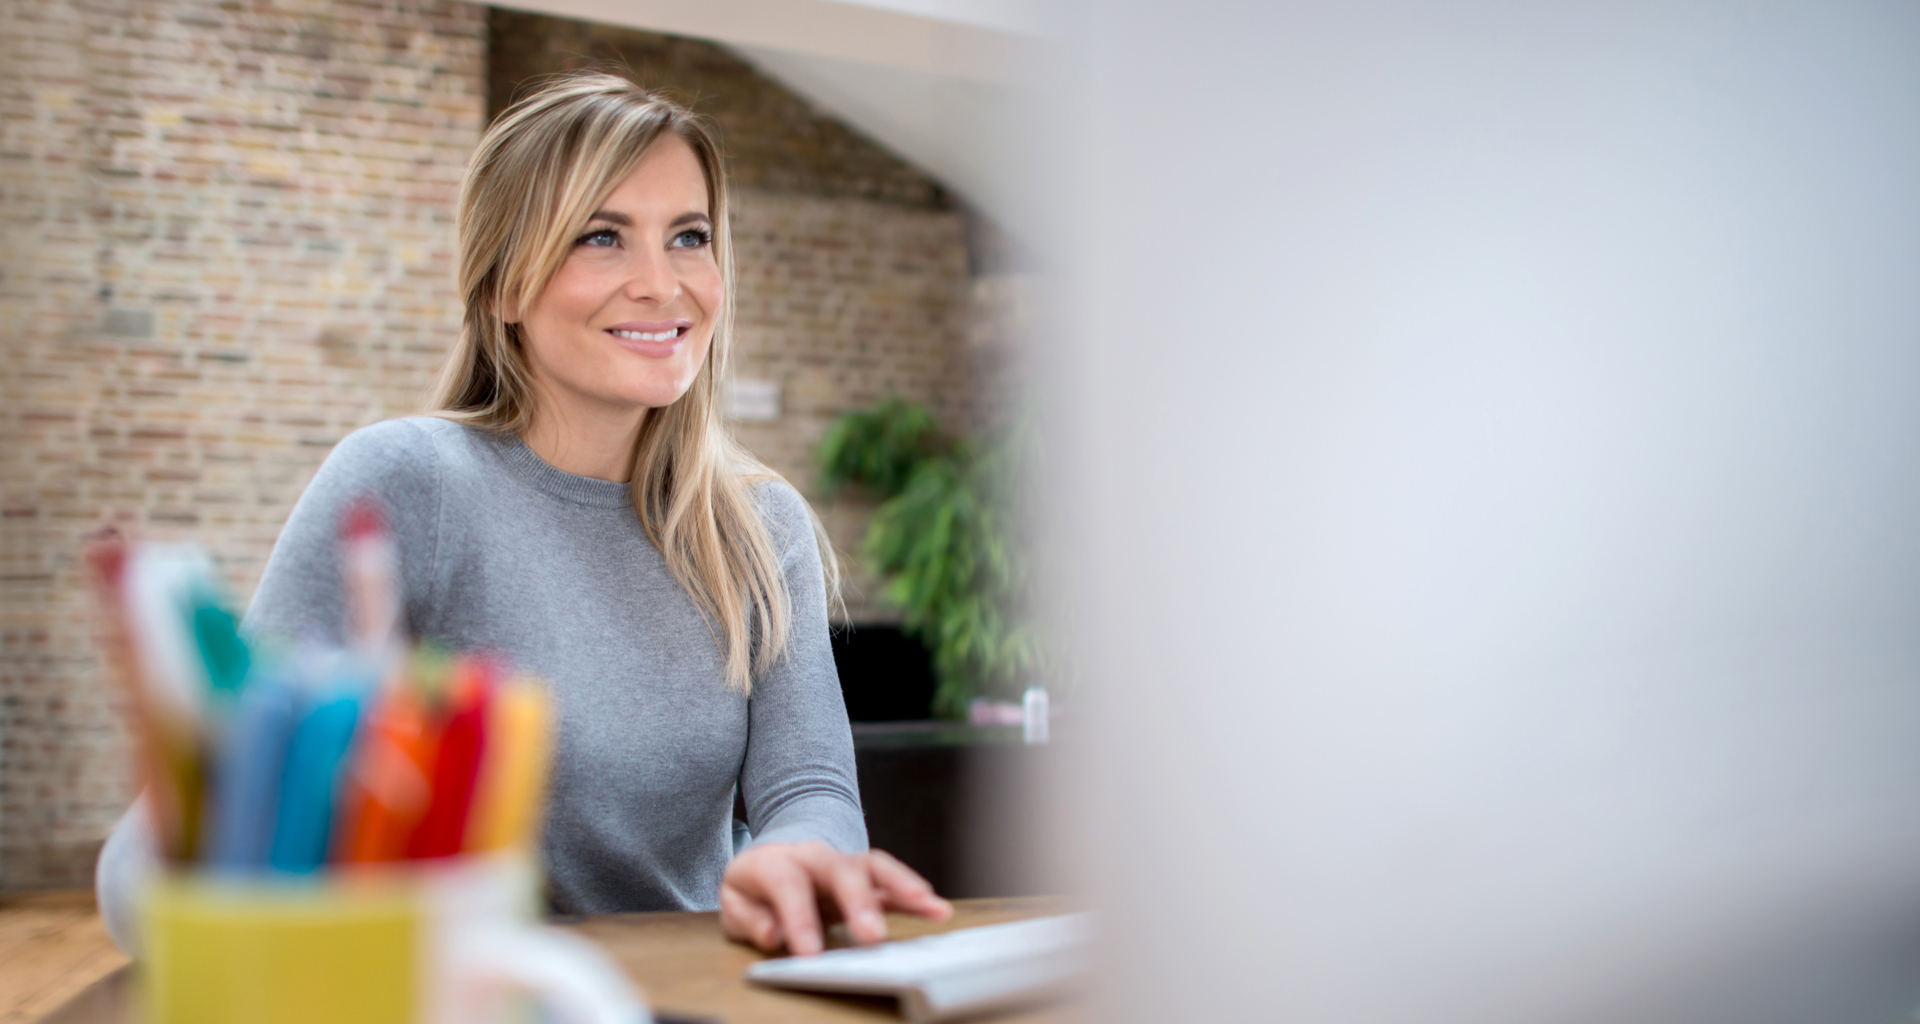 Woman-working-at-home-2